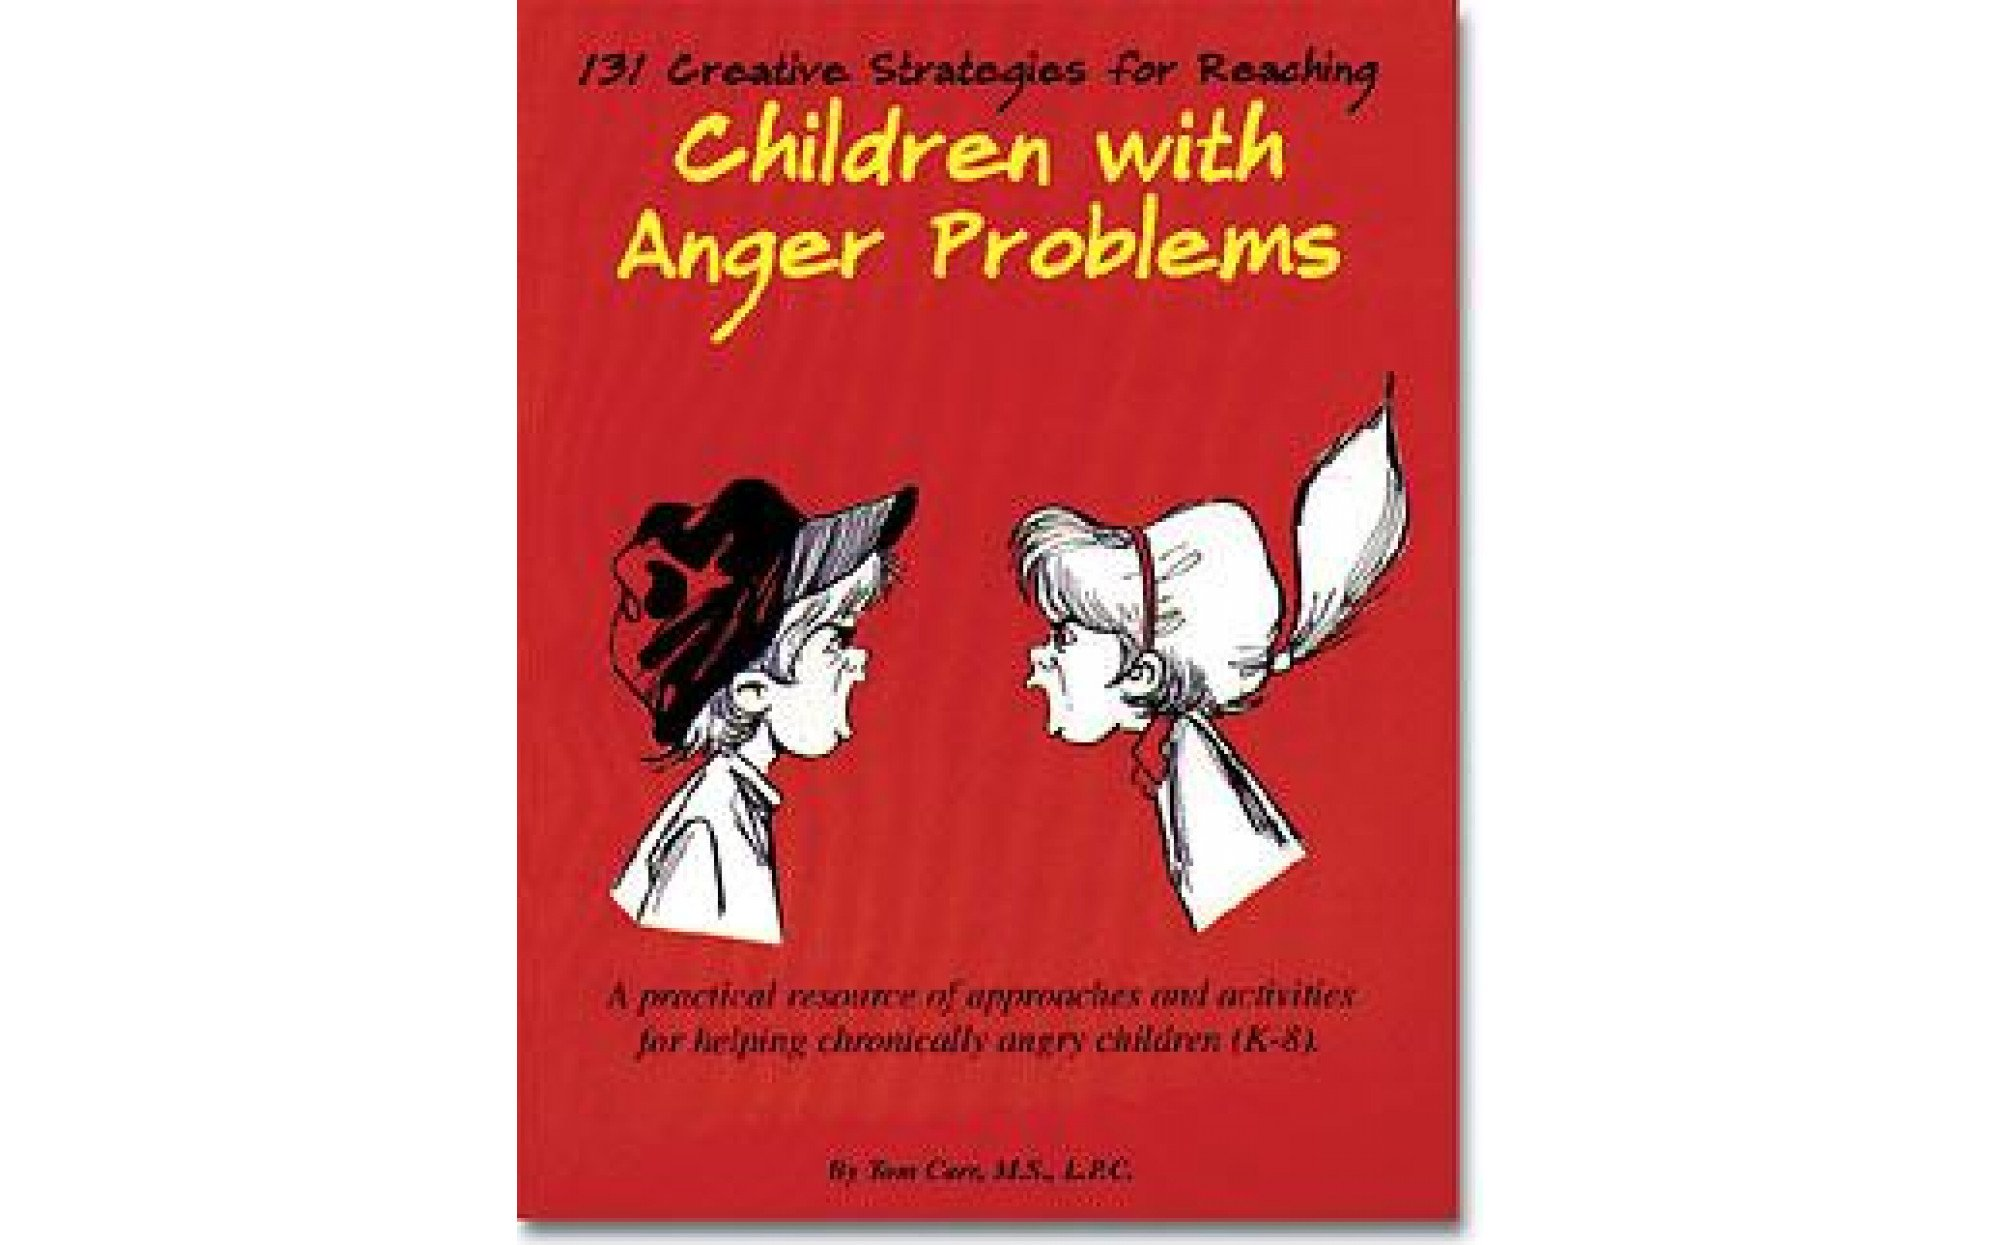 131 Creative Strategies for Reaching Children with Anger Problems – Books